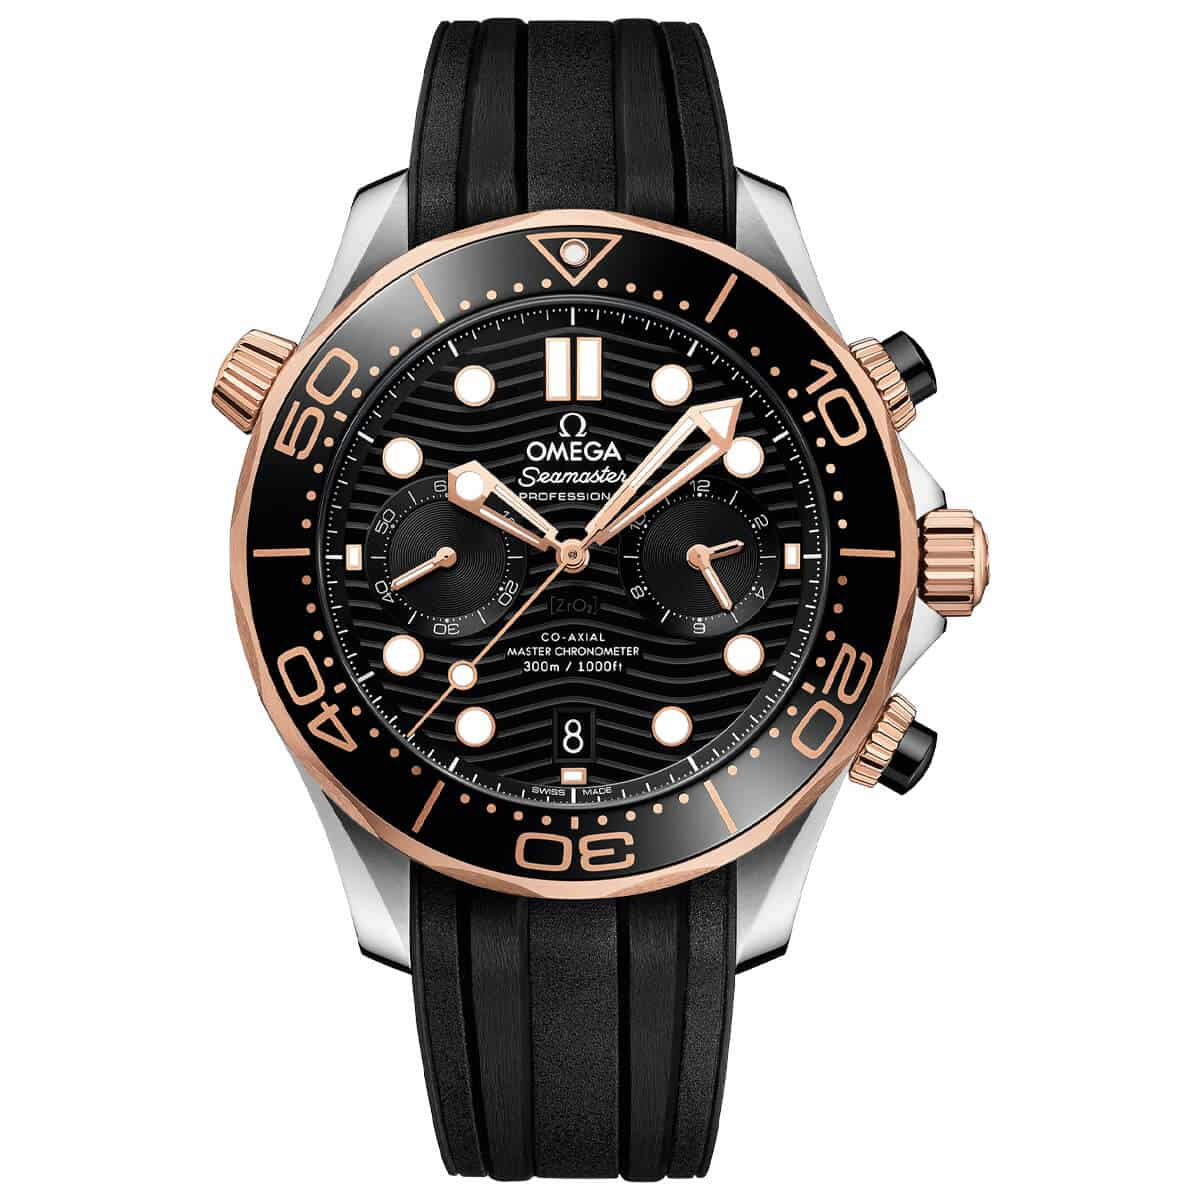 Omega Seamaster Diver300M Co-Axial Master Chronometer Chronograph